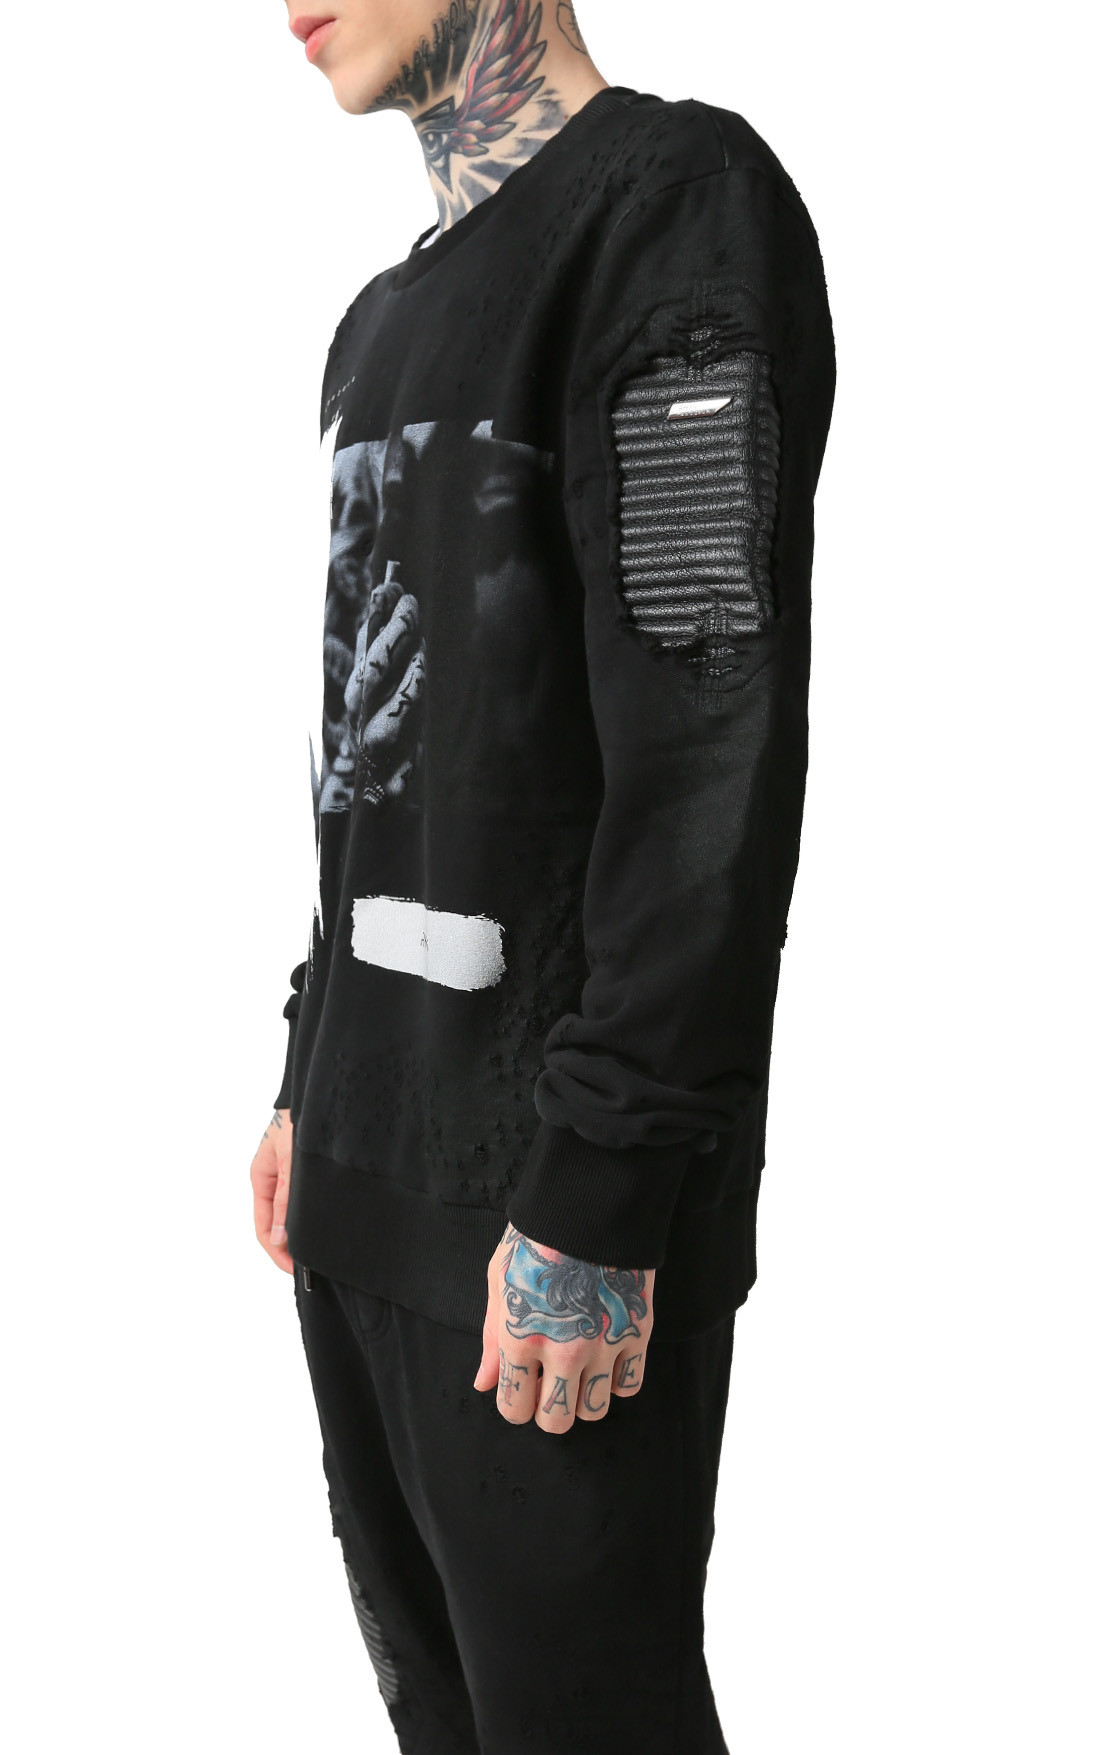 RH45 - Black Jumper with Print and Leather Detail (H101-1)